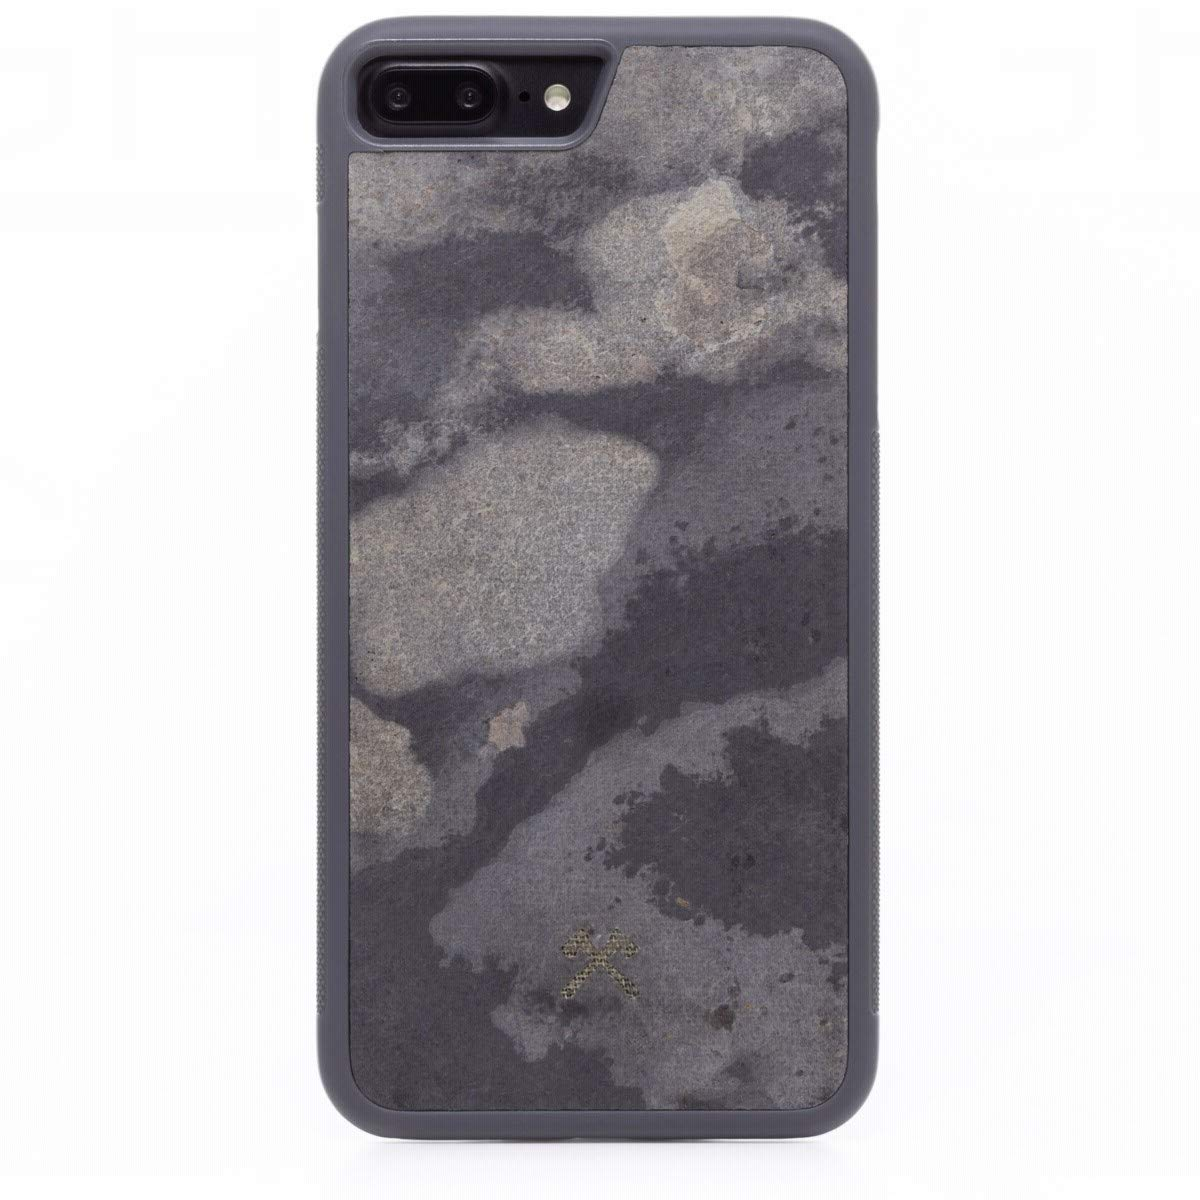 Woodcessories - Real Stone Case Compatible with iPhone 7 Plus / 8 Plus, EcoBump Stone (Camo Grey) by Woodcessories